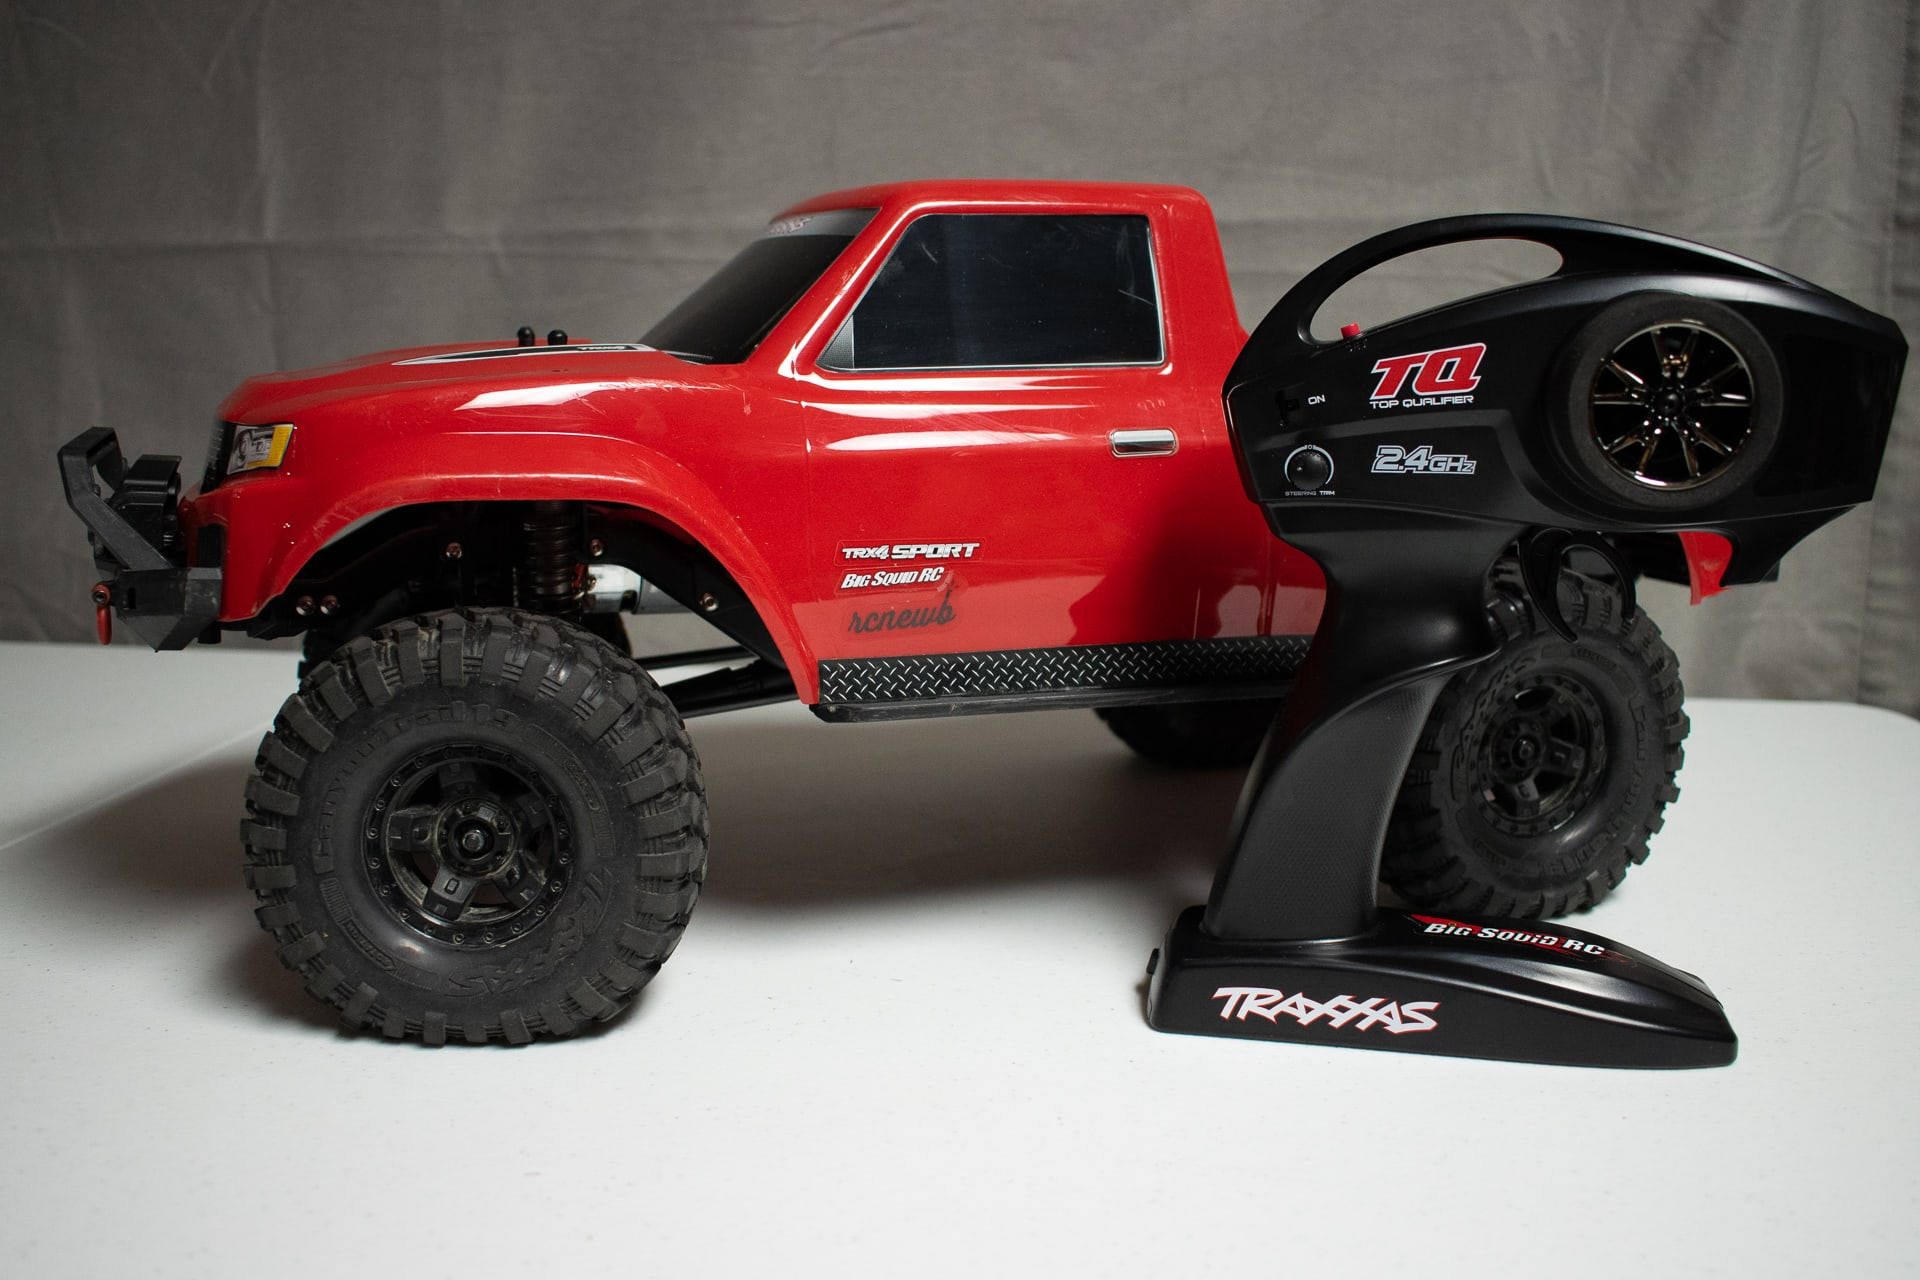 Hands-on with the Traxxas TRX-4 Sport [Video]